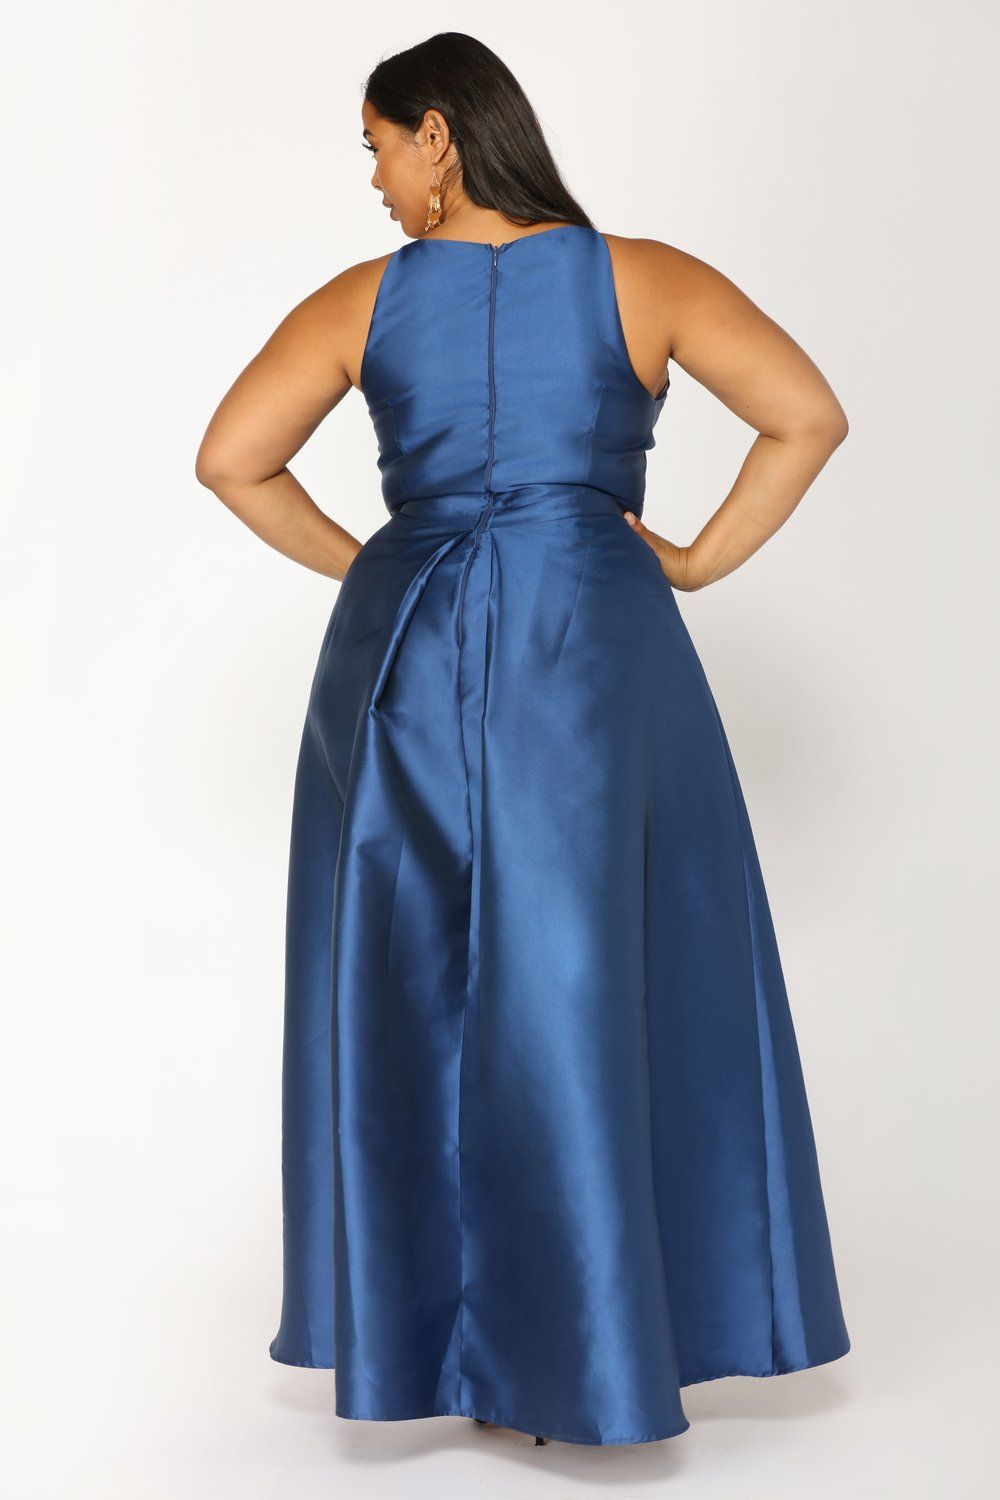 ba39f2cd7e8 Heartedly High Low Dress - Navy plus-size